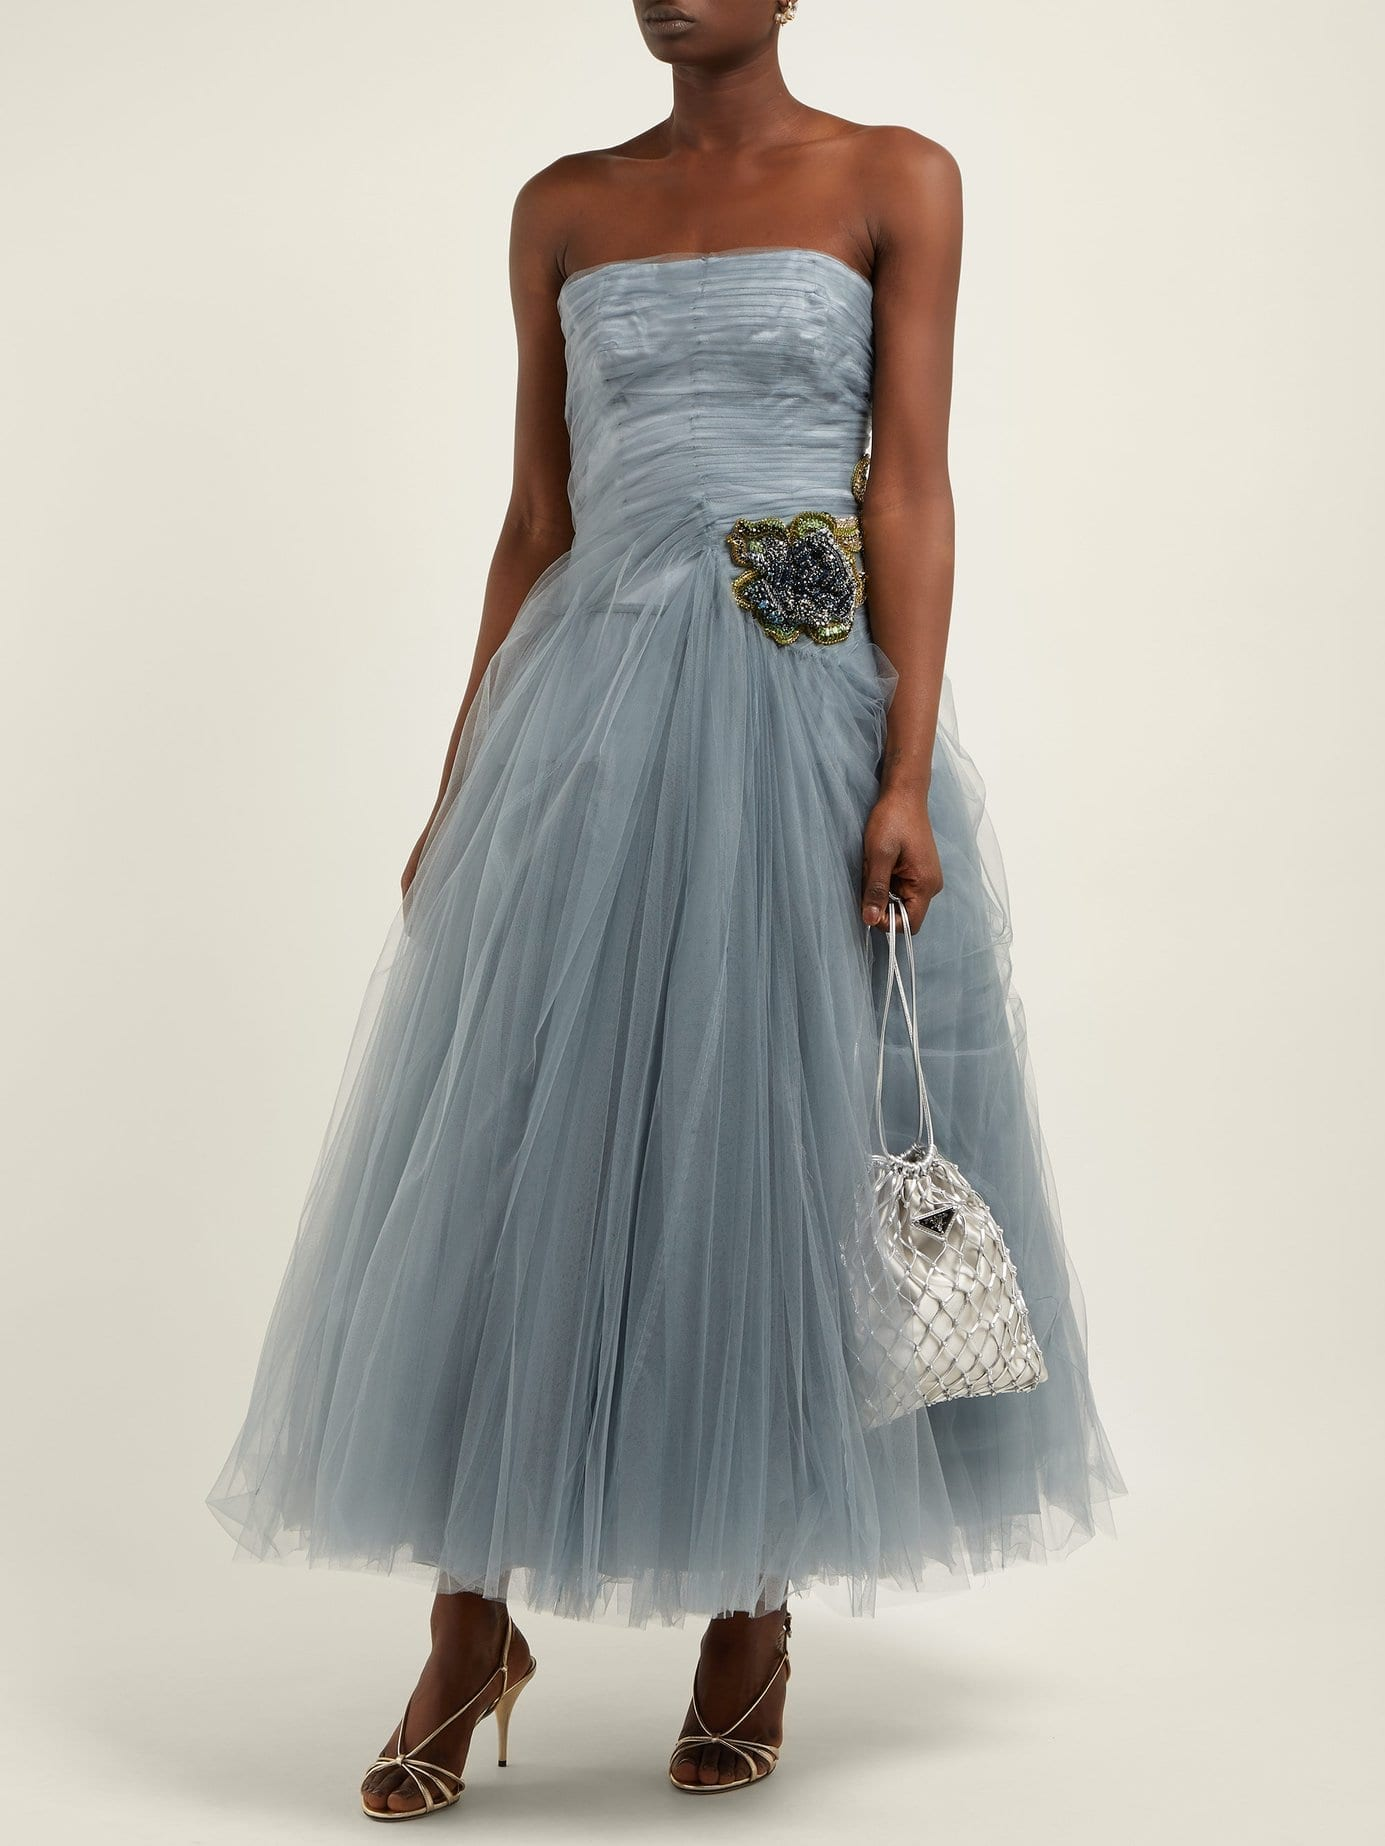 PRADA Crystal-embellished Tulle Blue Gown